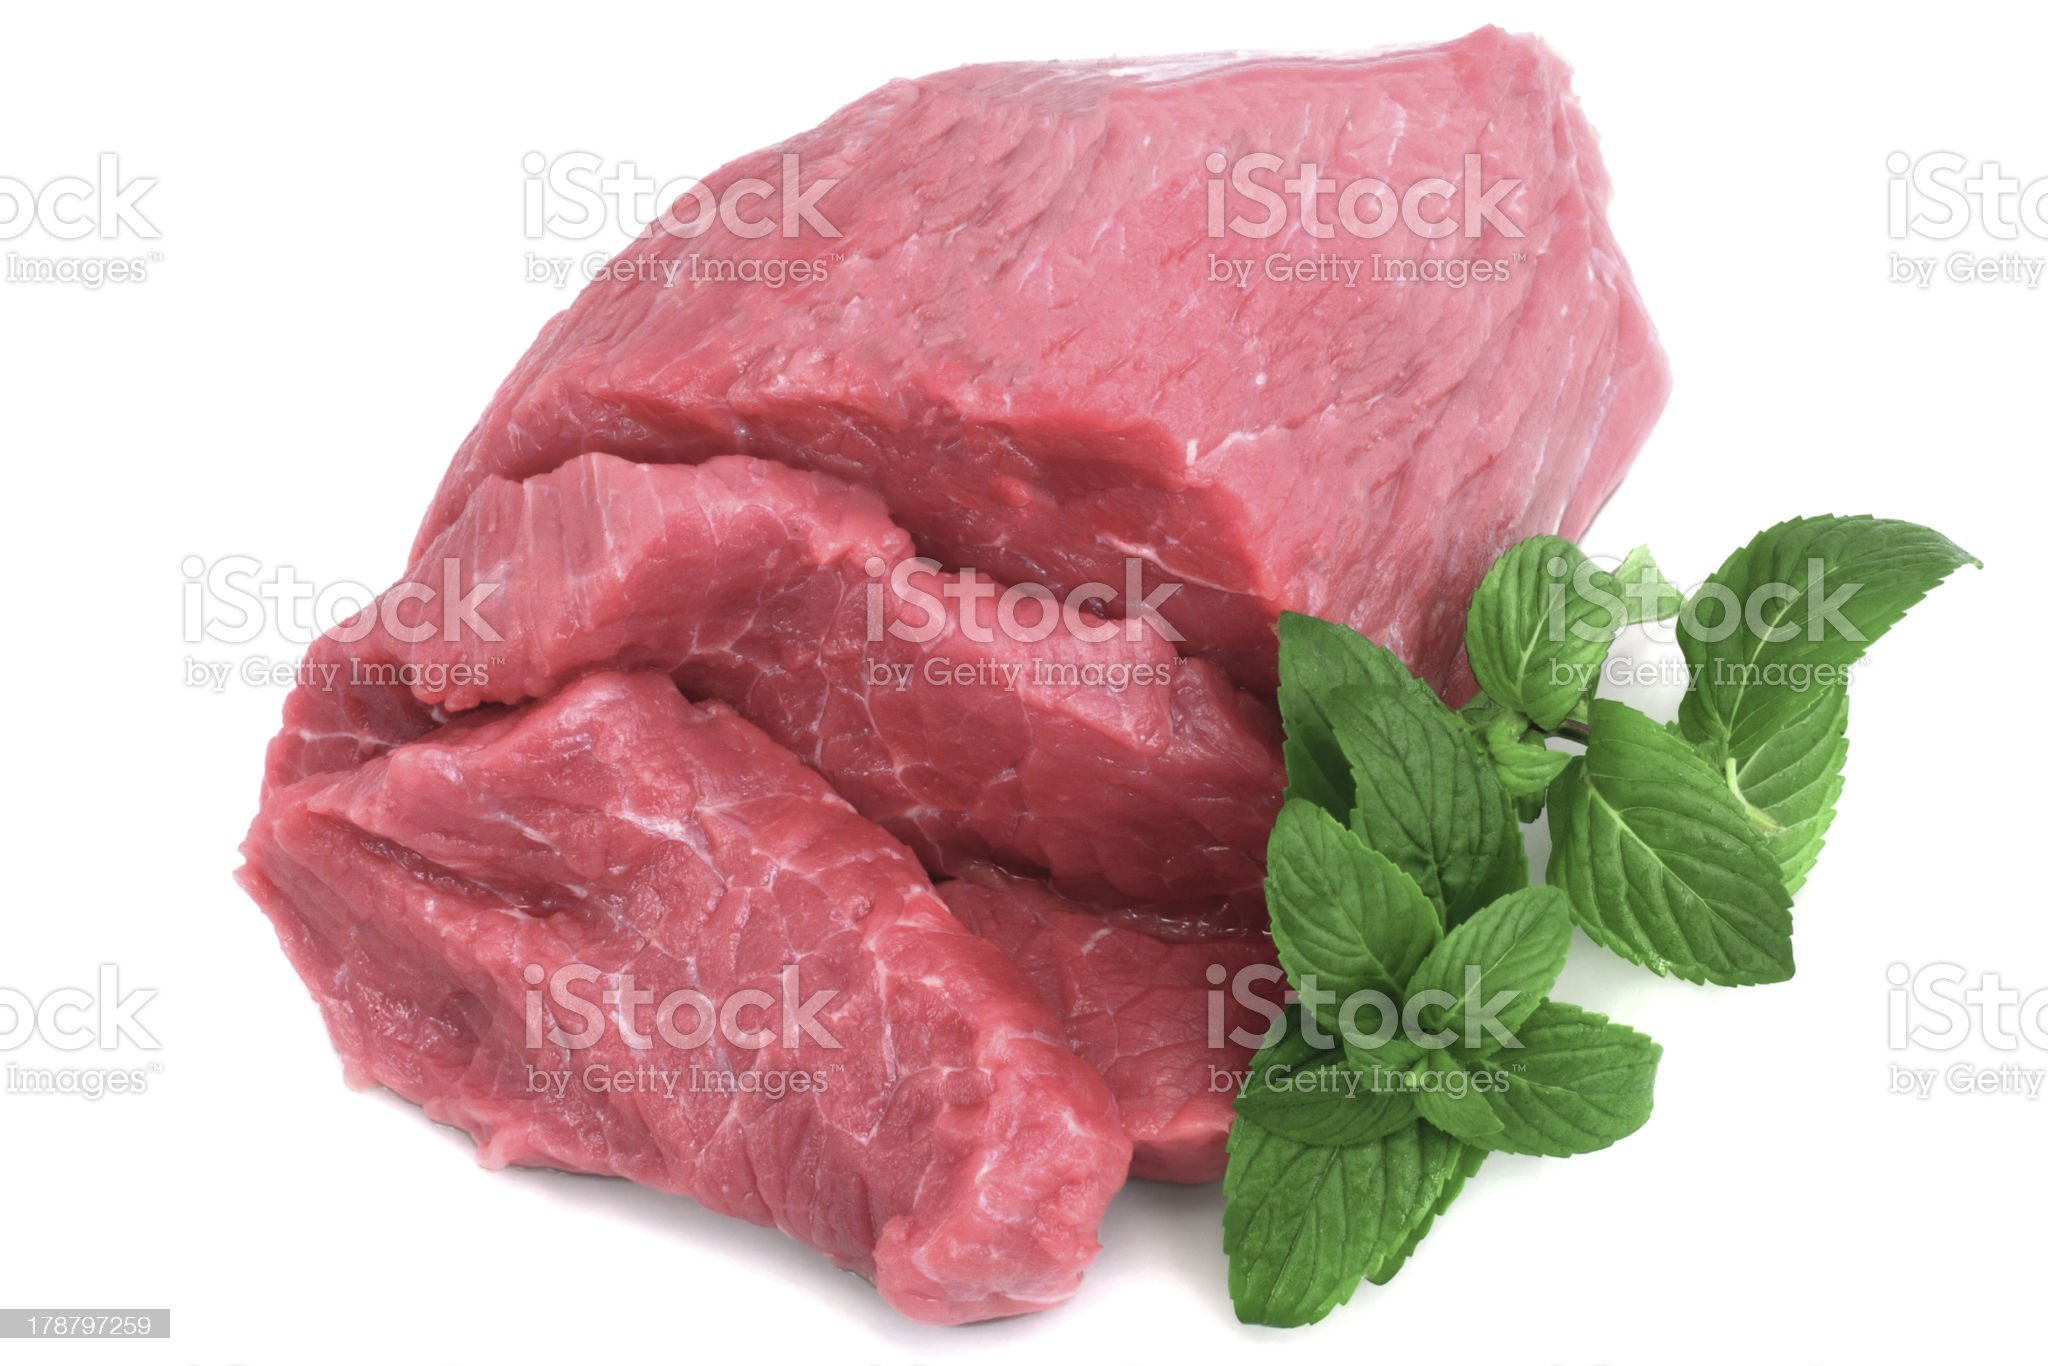 Cut of  beef steak with green leaf royalty-free stock photo